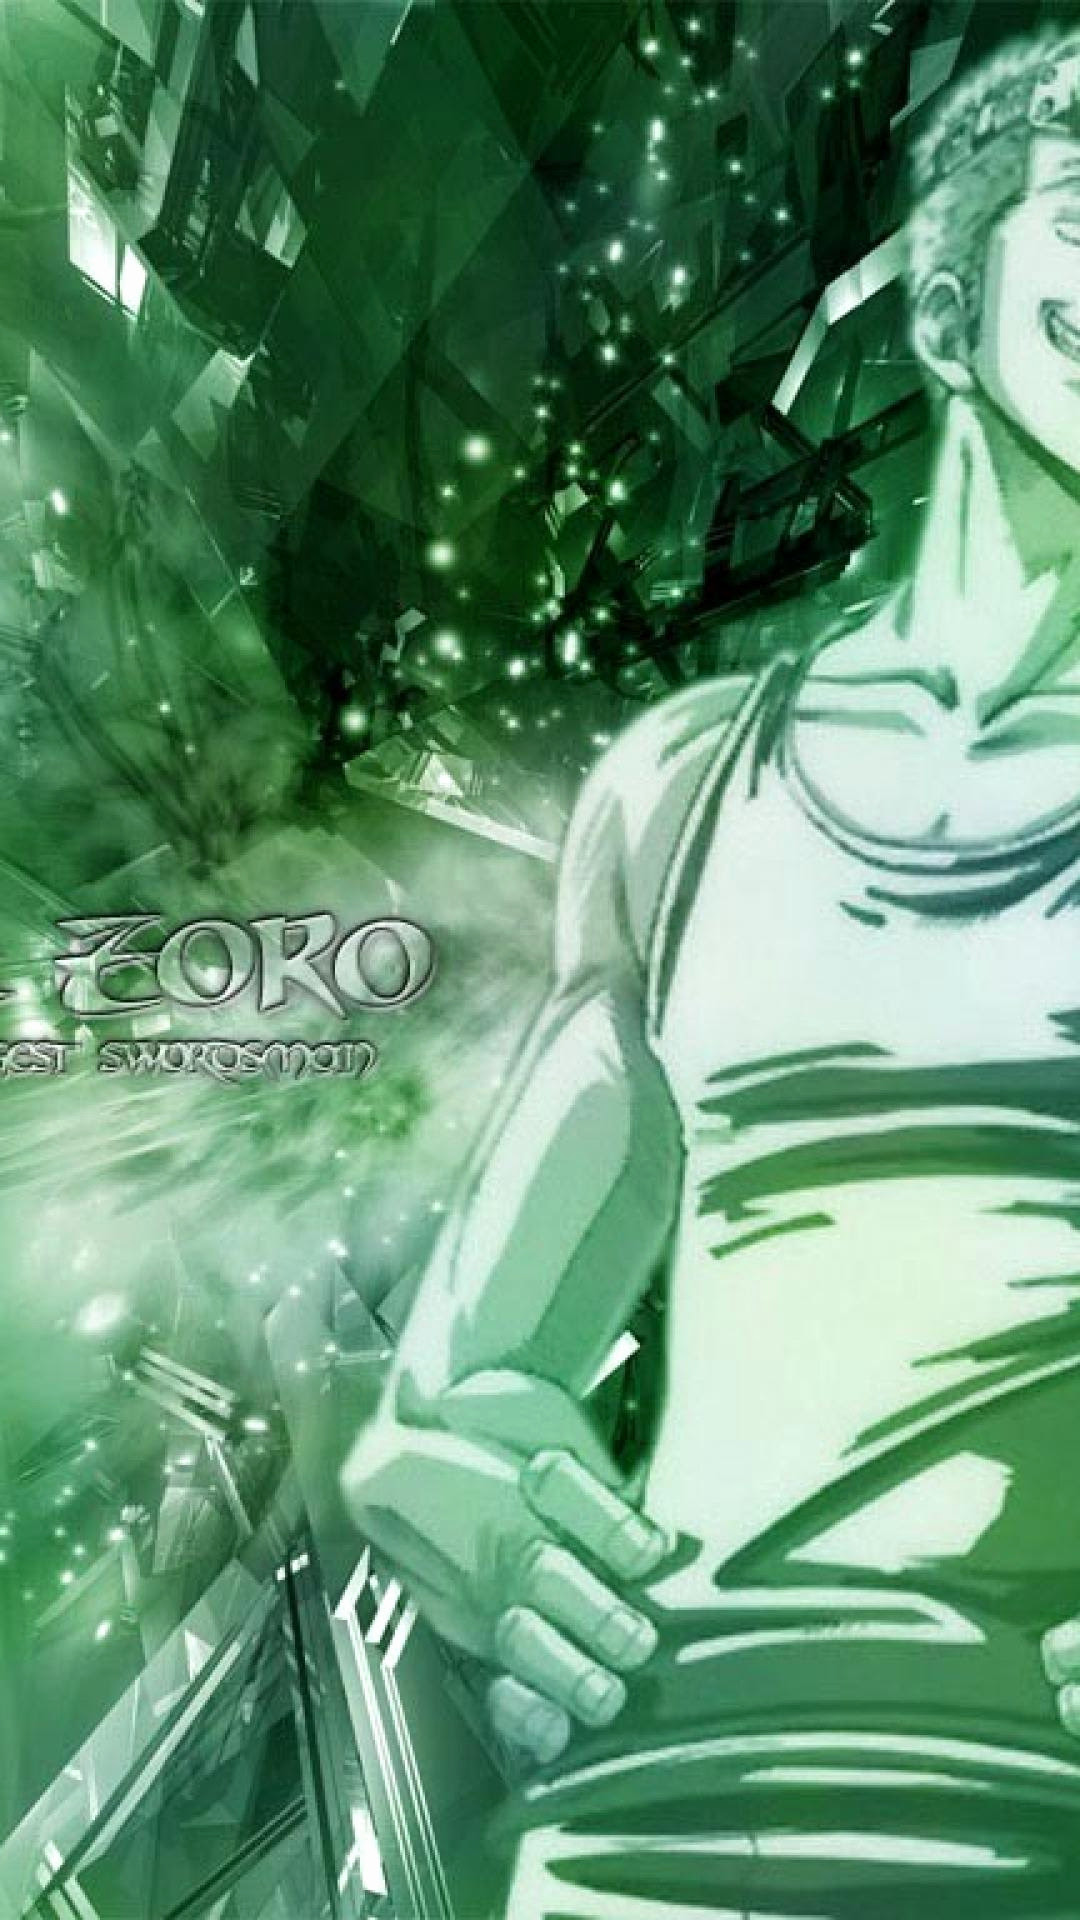 One Piece Zoro Wallpaper Pc Freewallanime